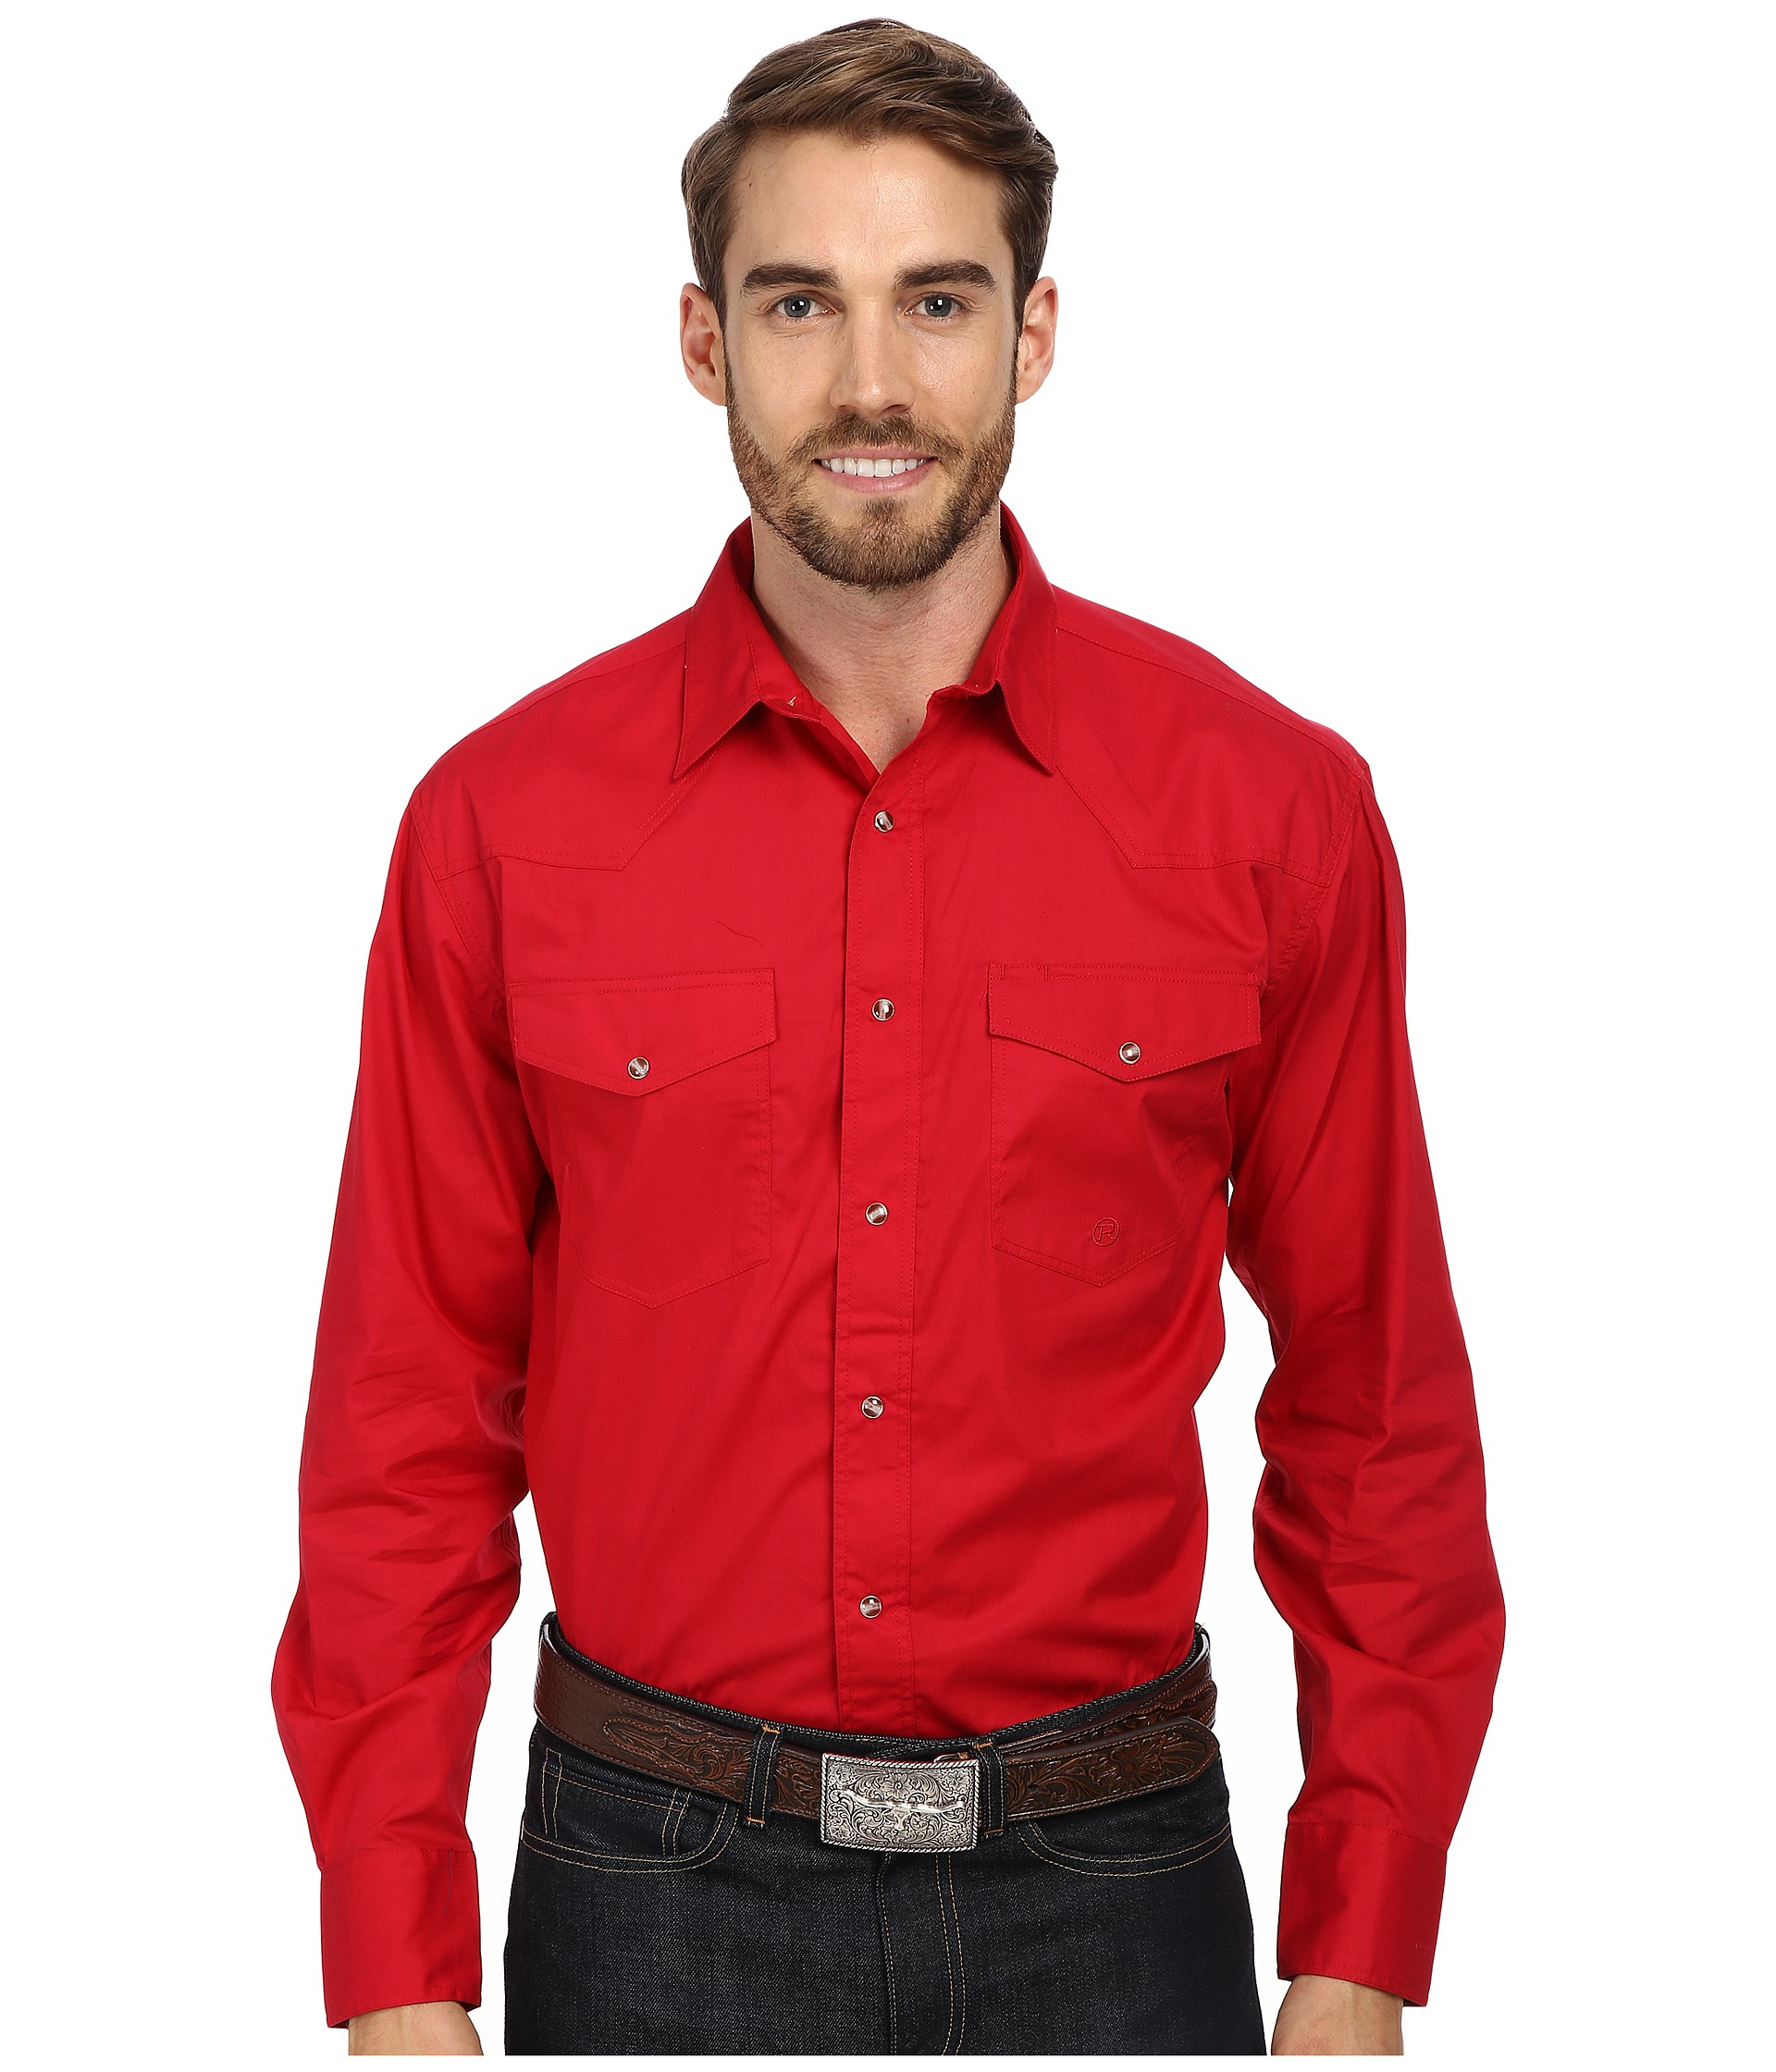 Roper l s solid basic snap front in red for men lyst for Mens shirts with snaps instead of buttons